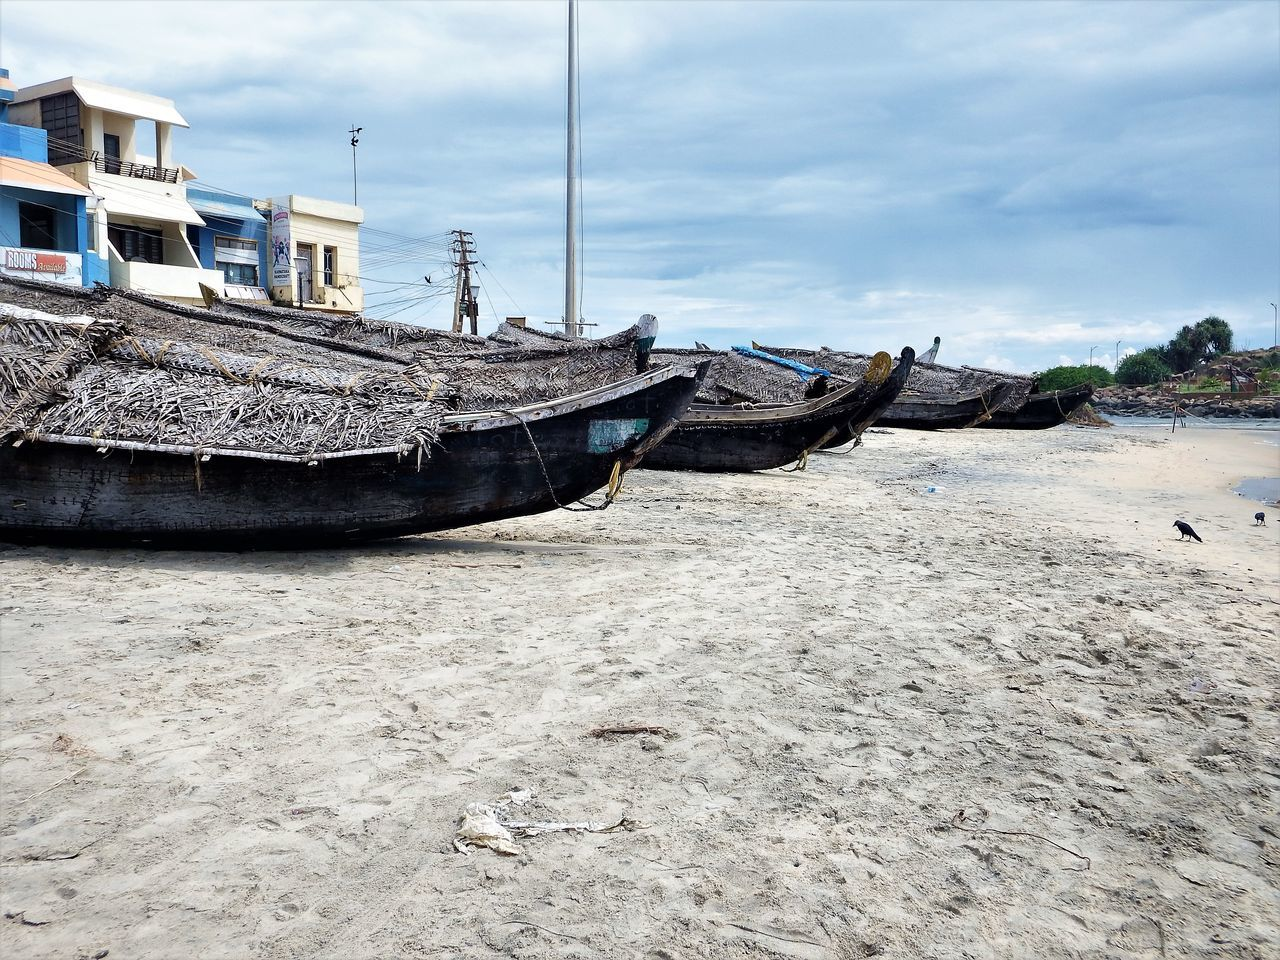 nautical vessel, moored, boat, sky, beach, cloud - sky, sand, mode of transport, no people, day, water, transportation, outdoors, sea, nature